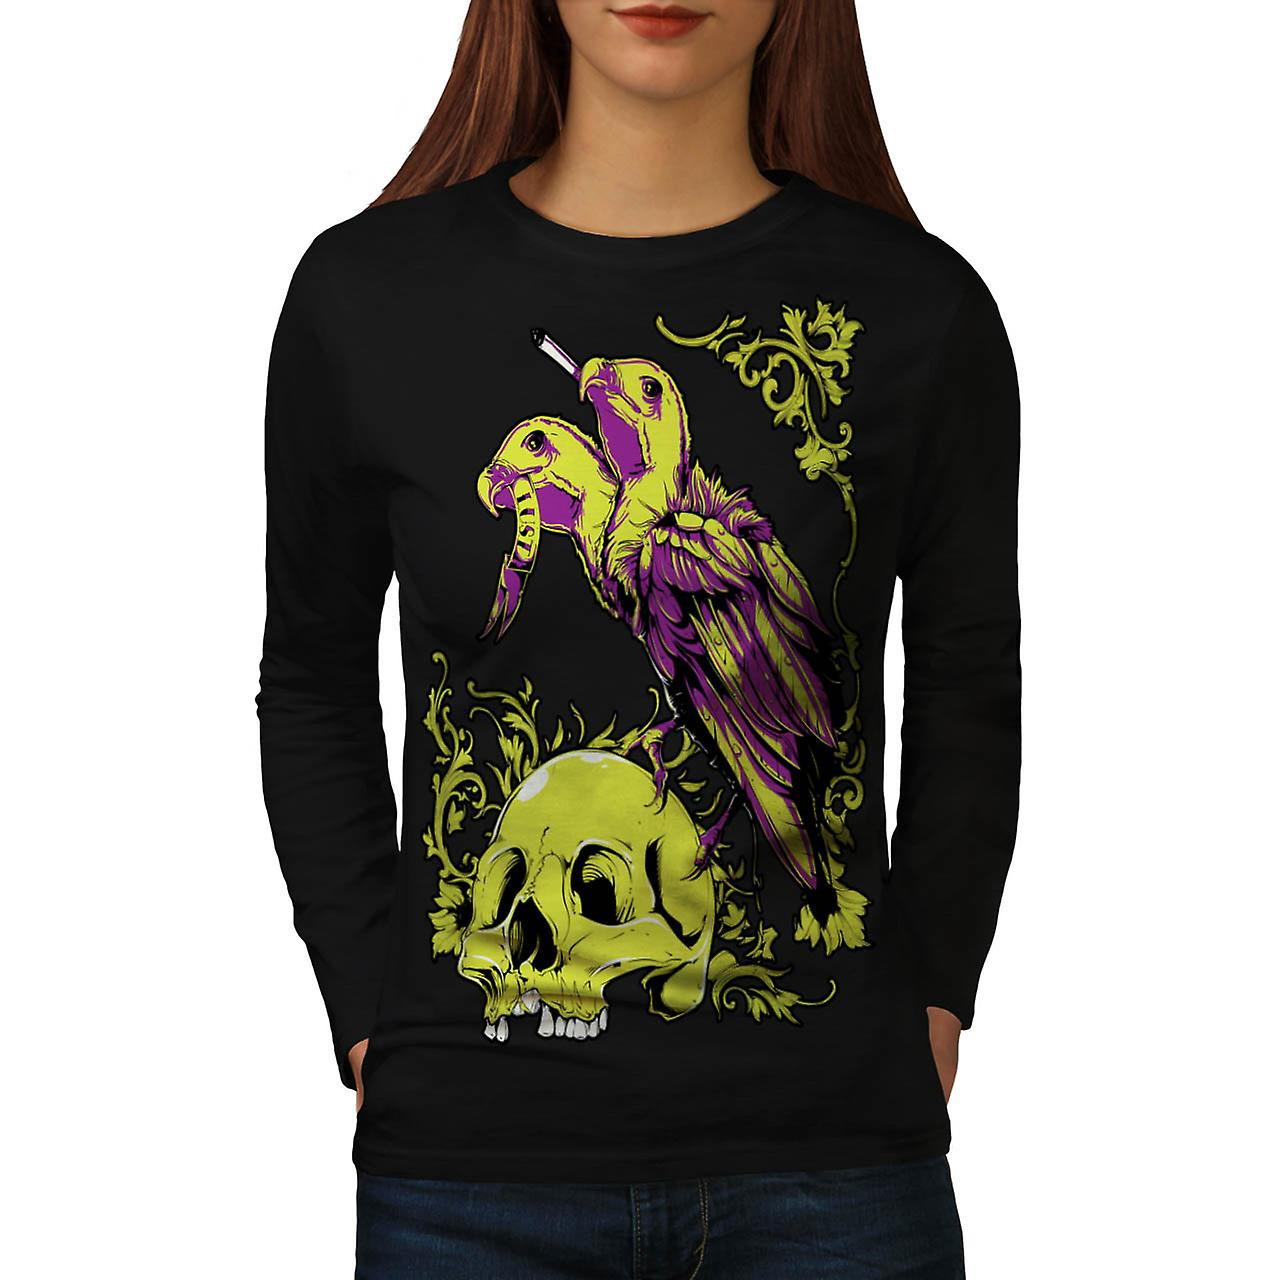 Scavenger Lust Crow Burial Land Women Black Long Sleeve T-shirt | Wellcoda